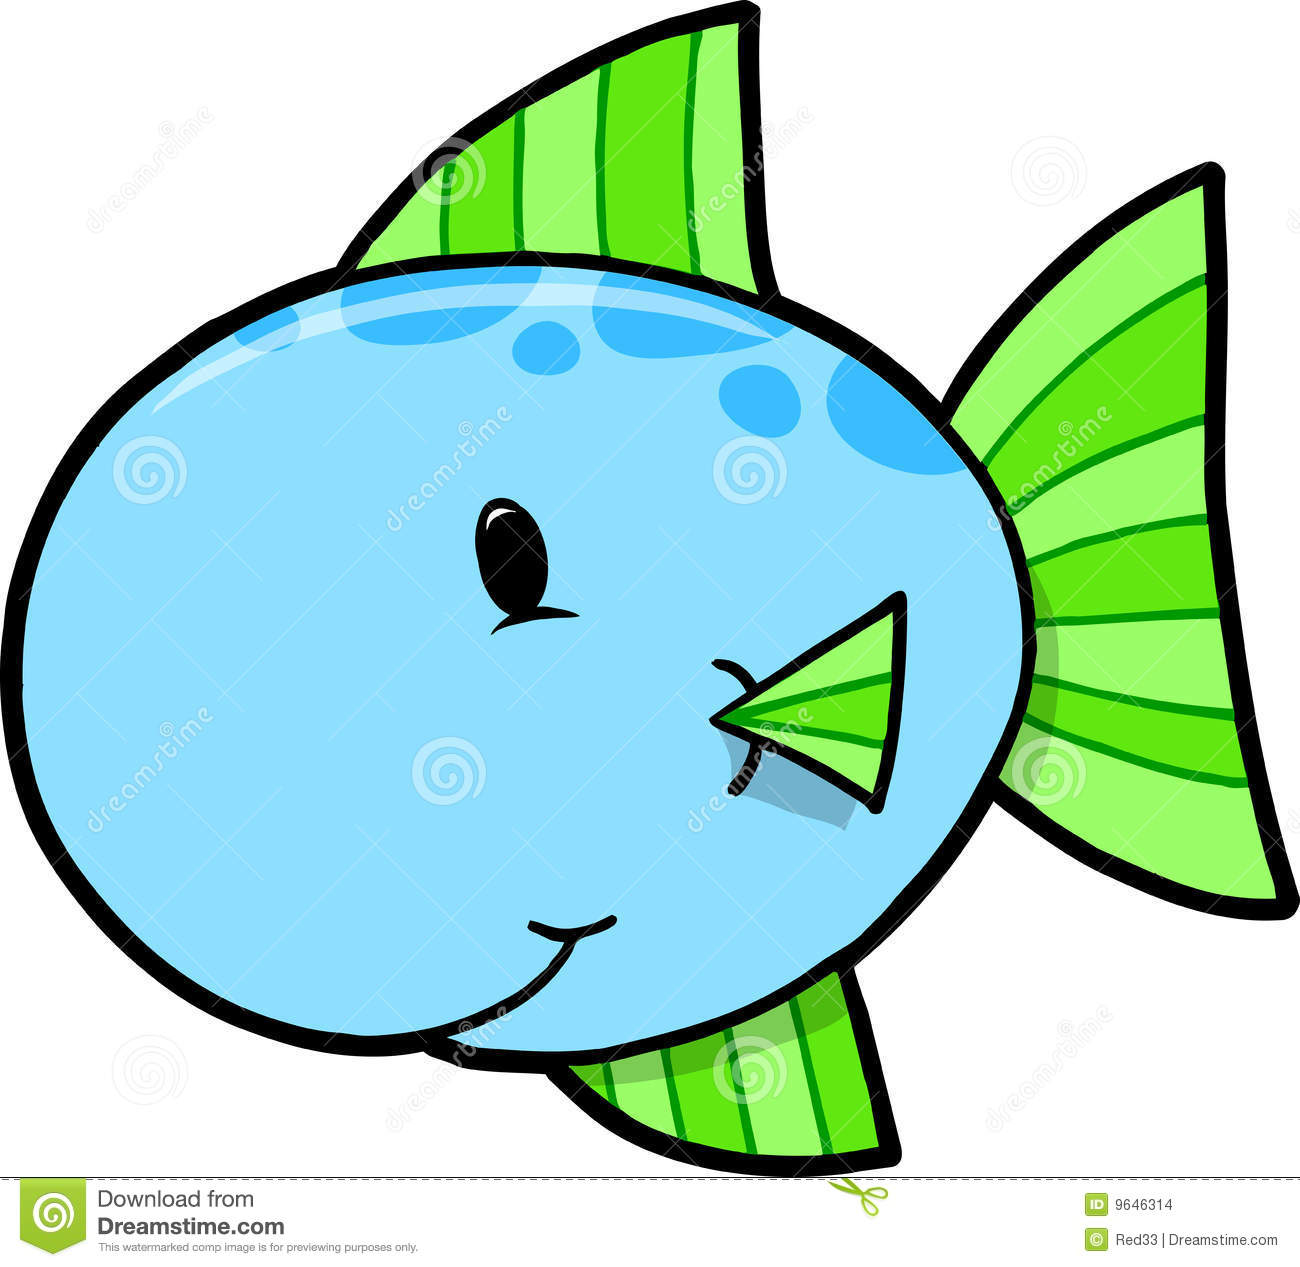 Blue fish clipart clipart suggest for Fish clipart images